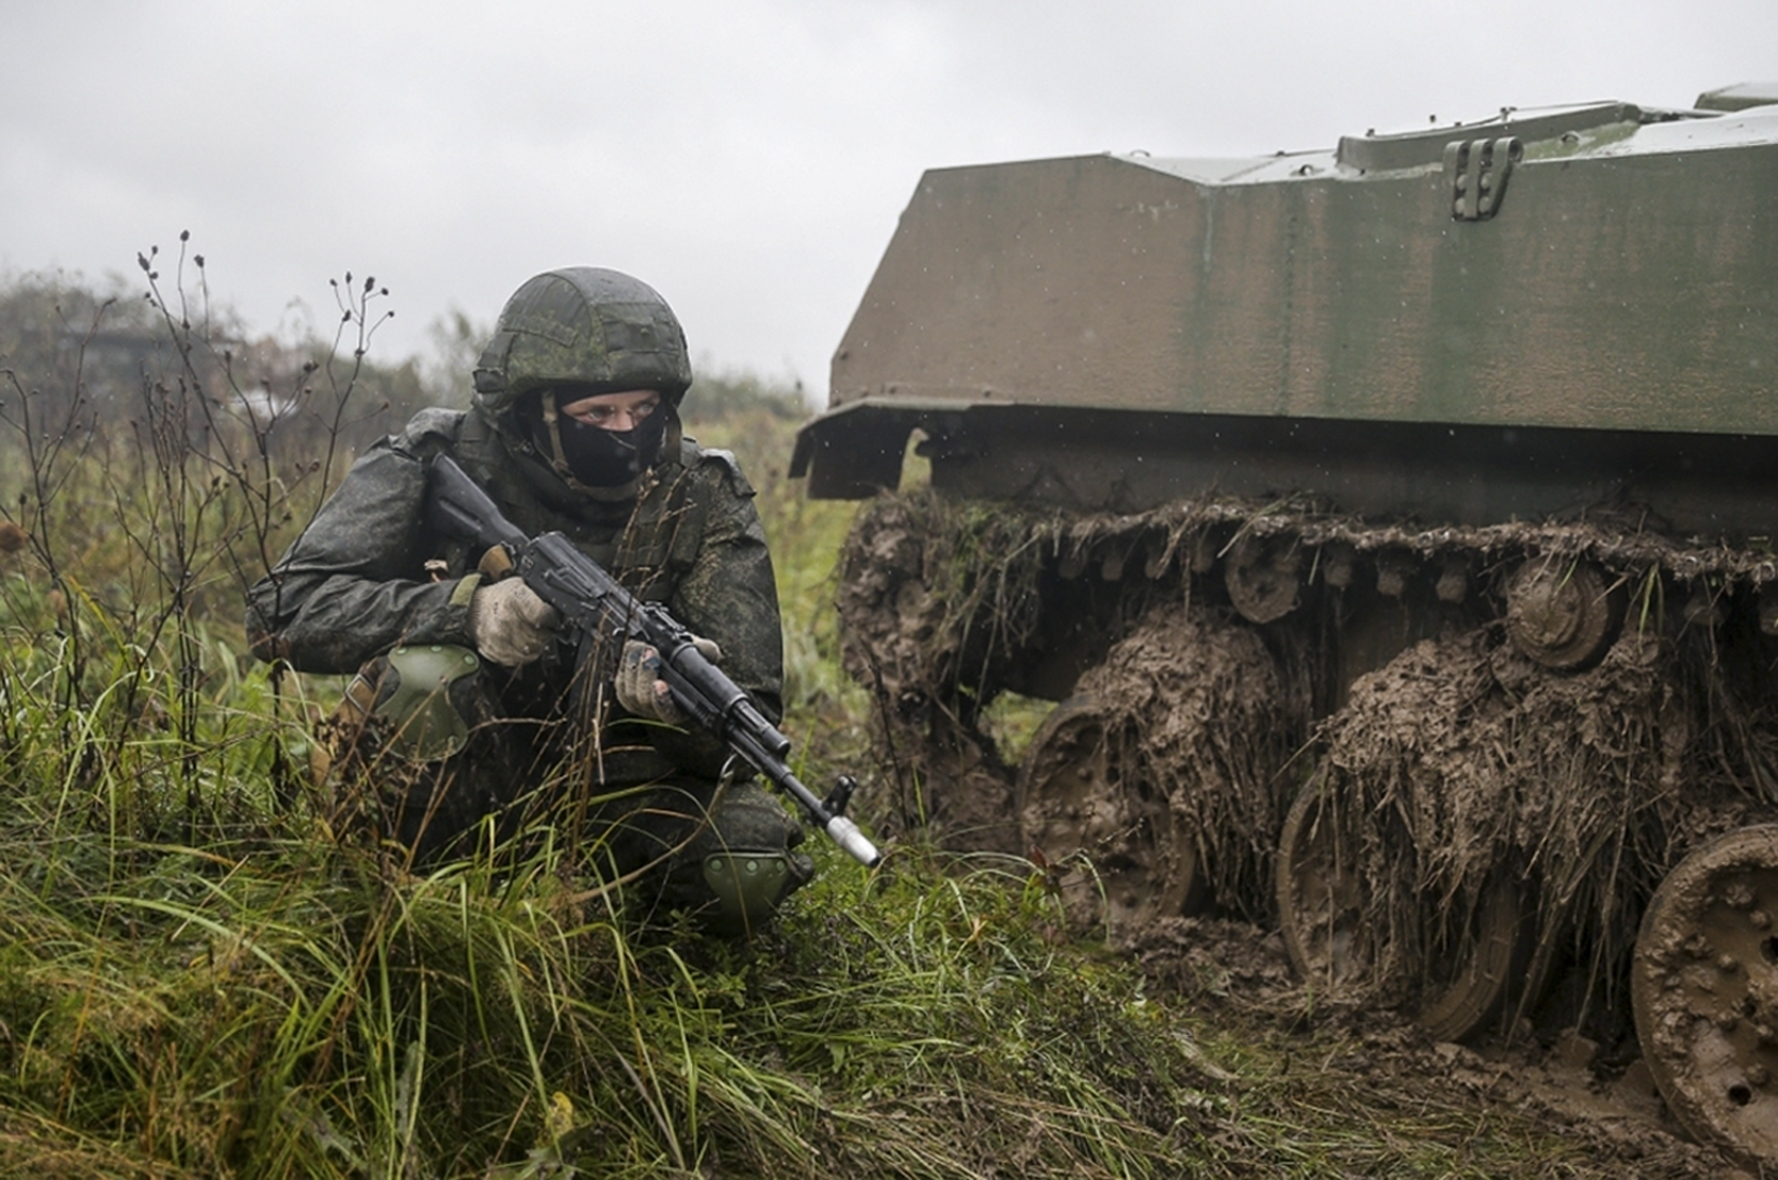 A Russian serviceman attends a military exercise at a training ground near Kaliningrad, Russia, on Sept. 18, 2017. (Russian Defence Ministry Press Service/AP)